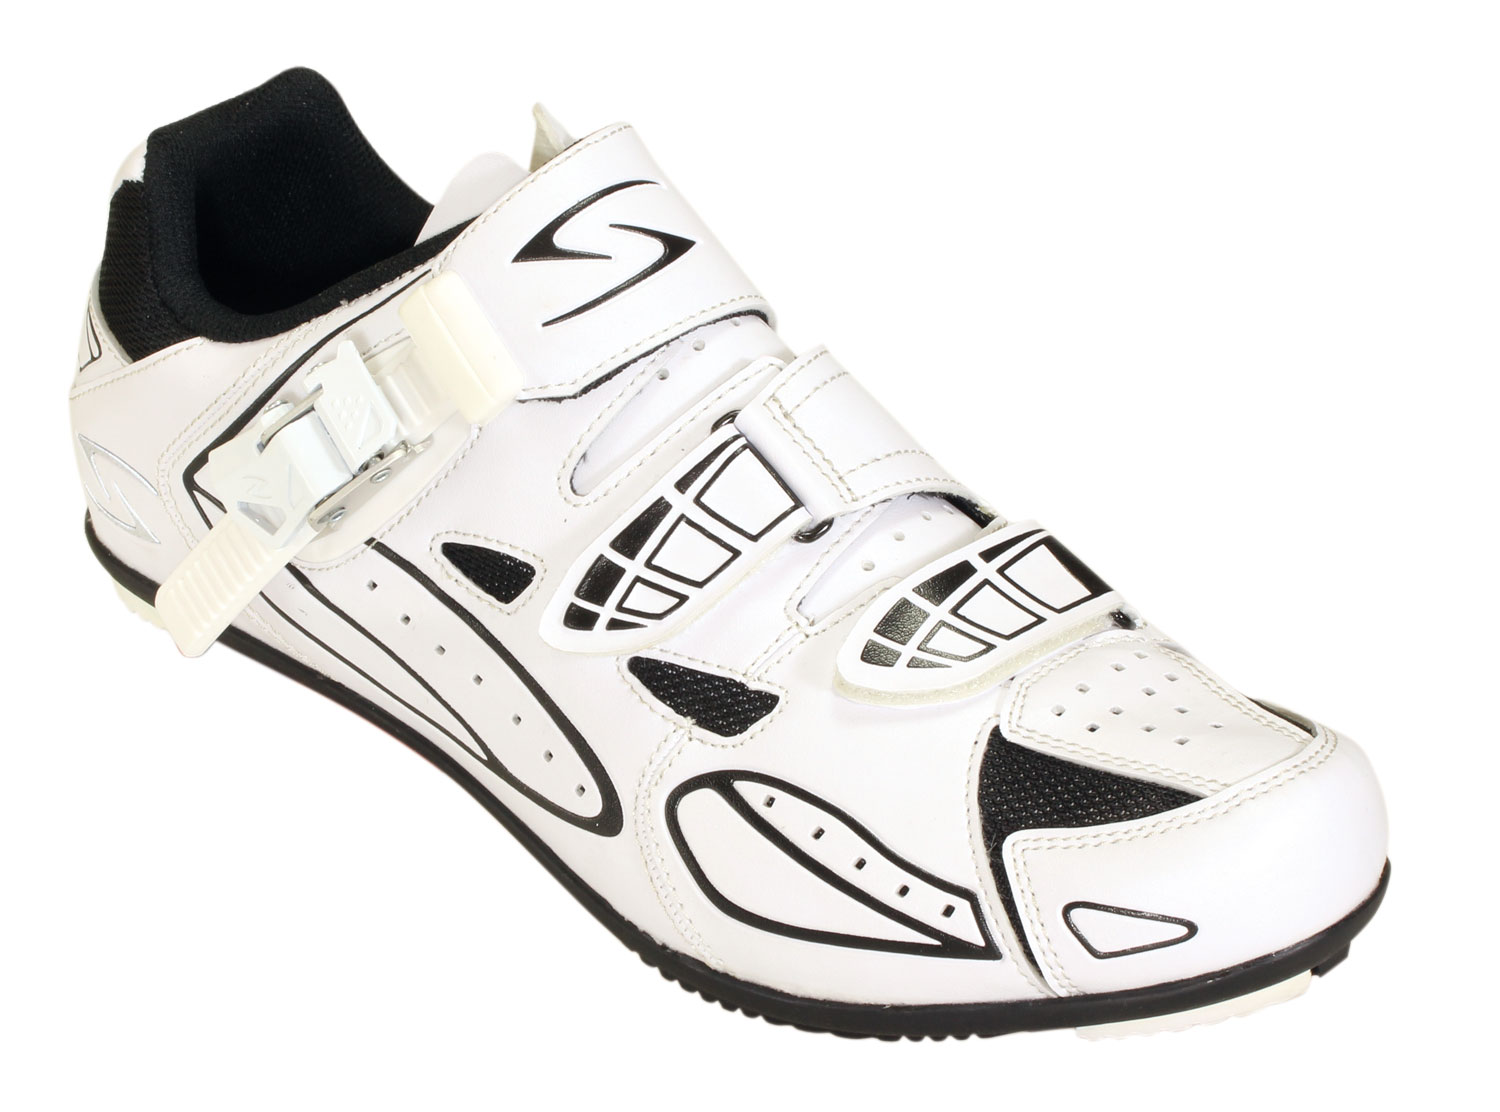 d1f4a09c Podium Road Shoes - Women's